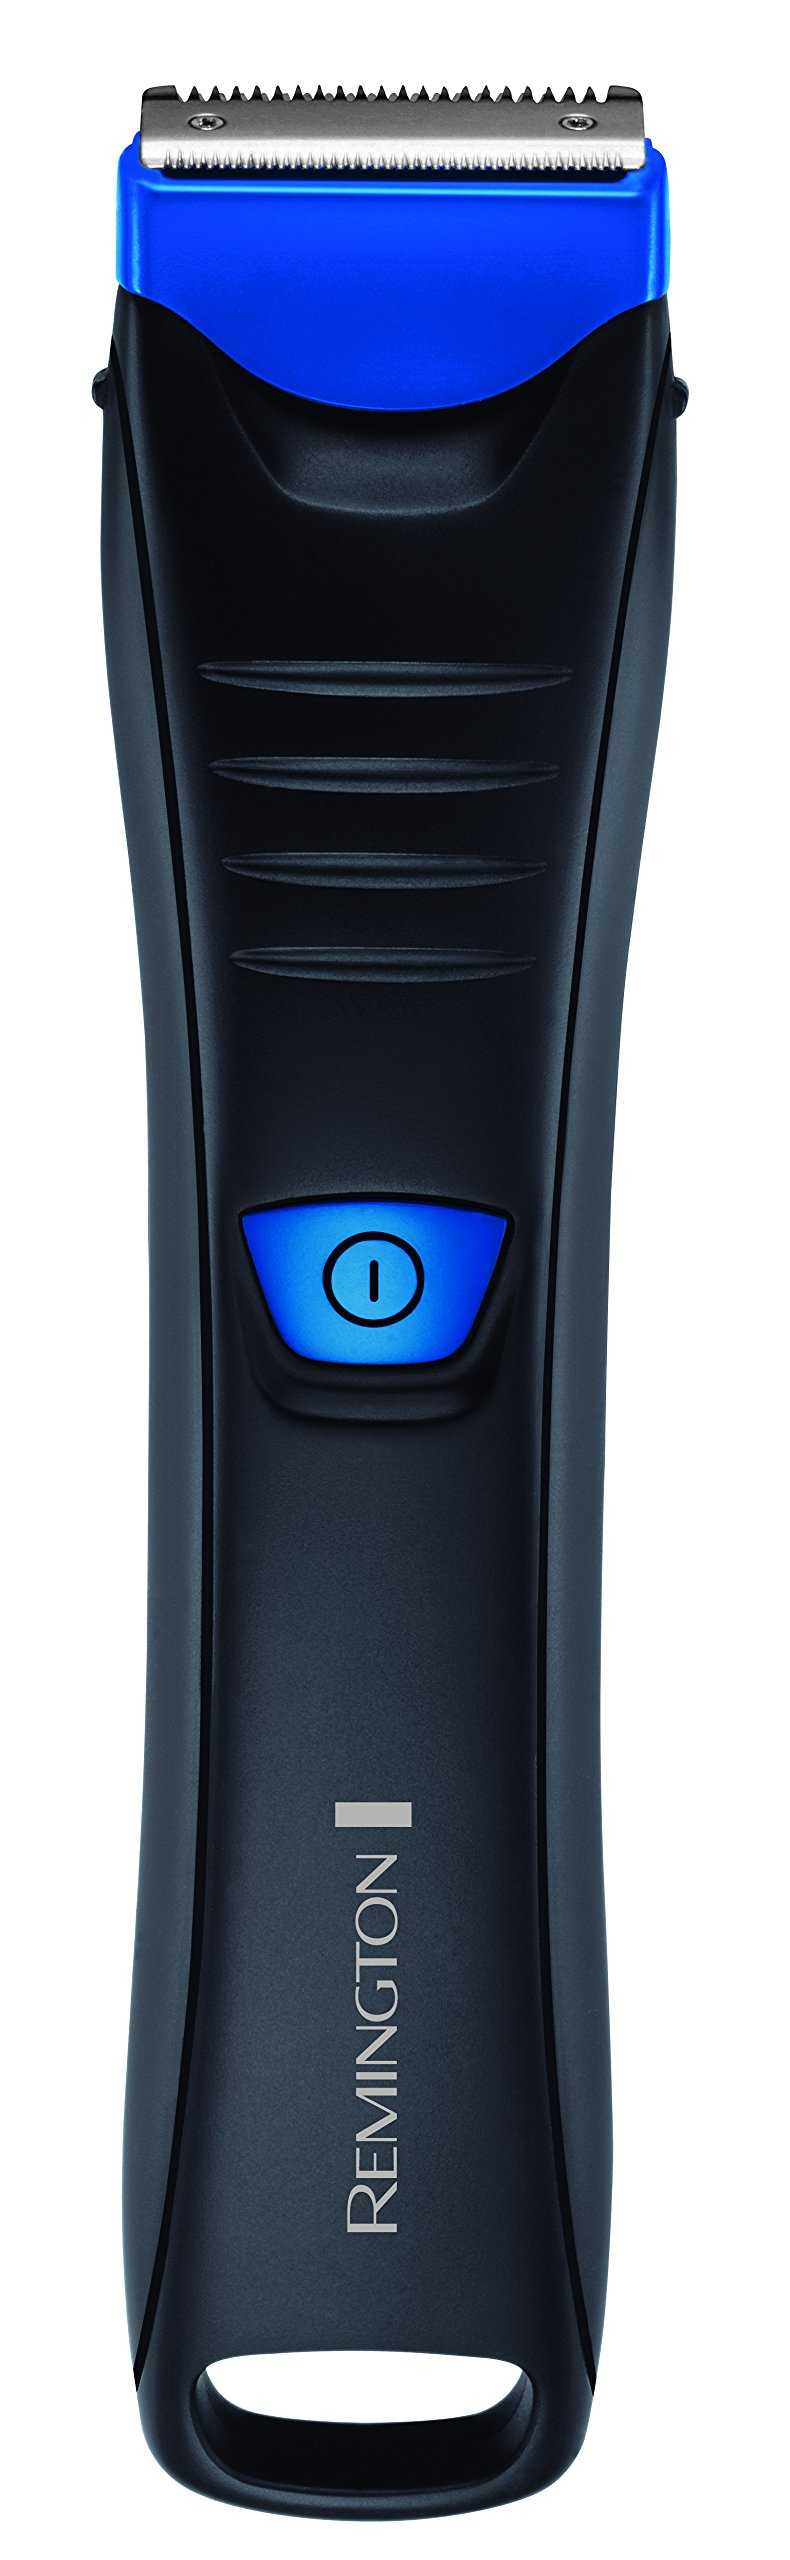 Remington BHT250 Delicates Body And Hair Trimmer BlackBlue